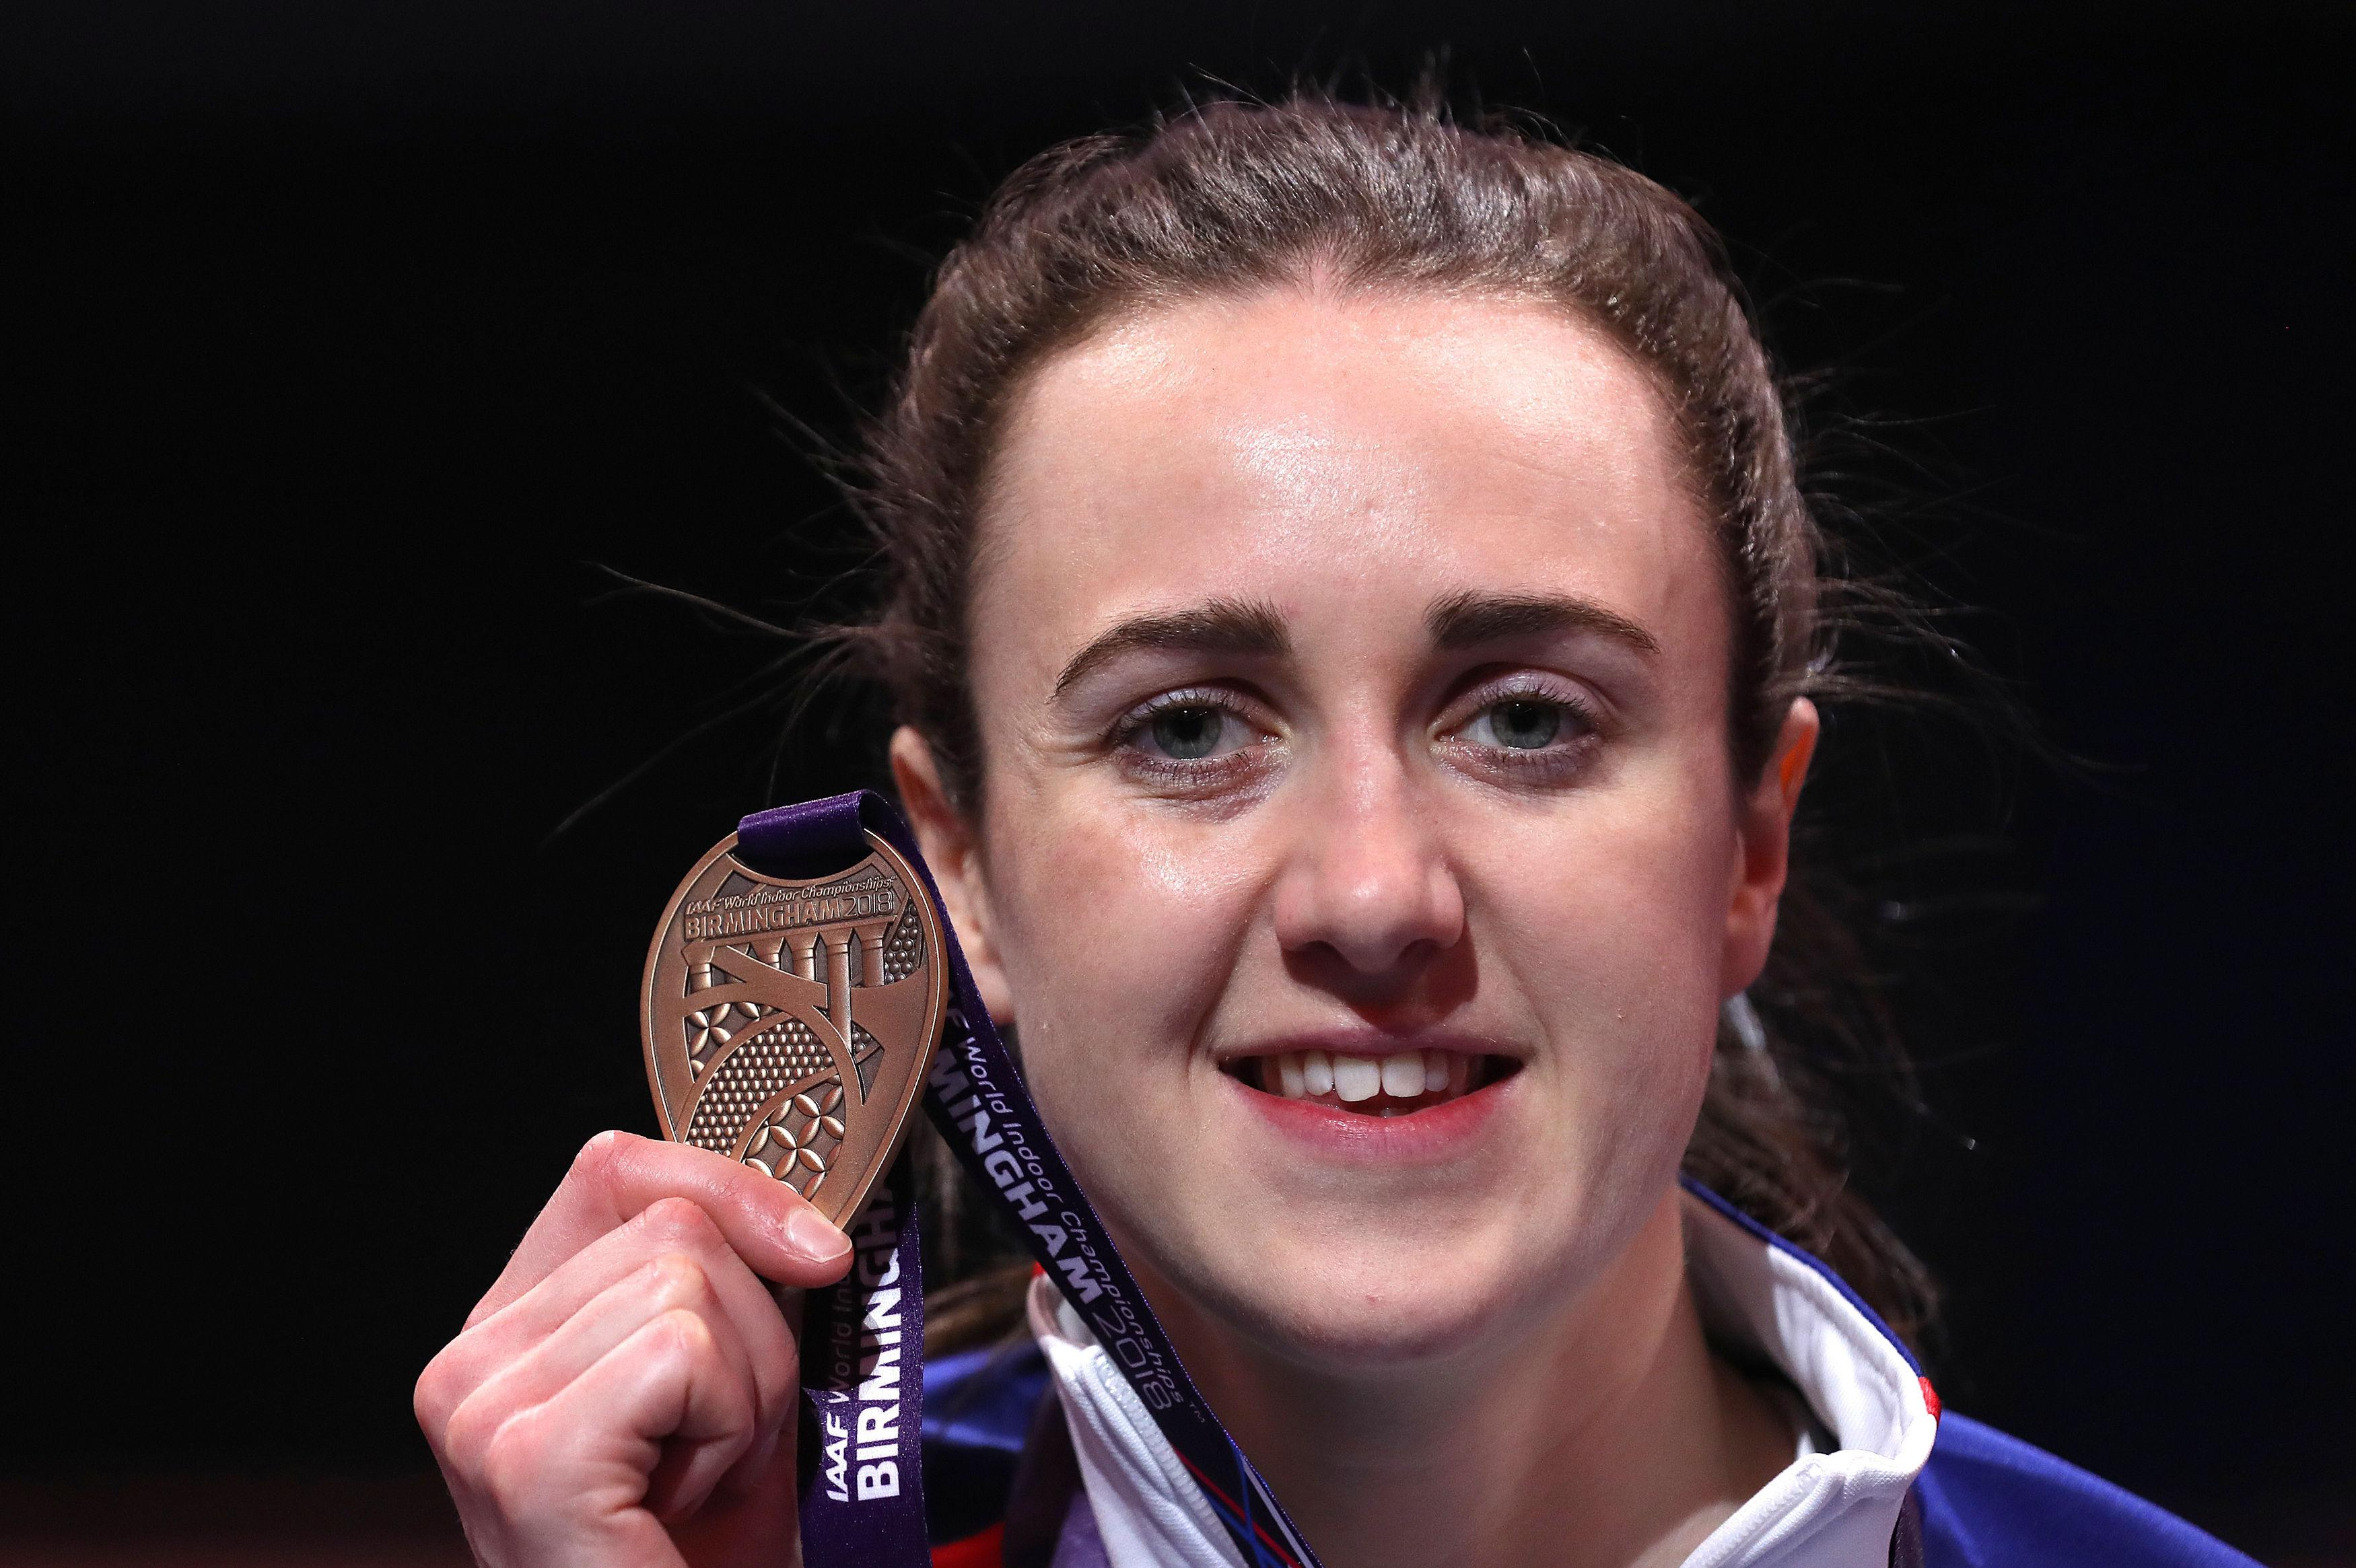 Muir, 25, was born in Inverness and could soon be representing Scotland over Great Britain